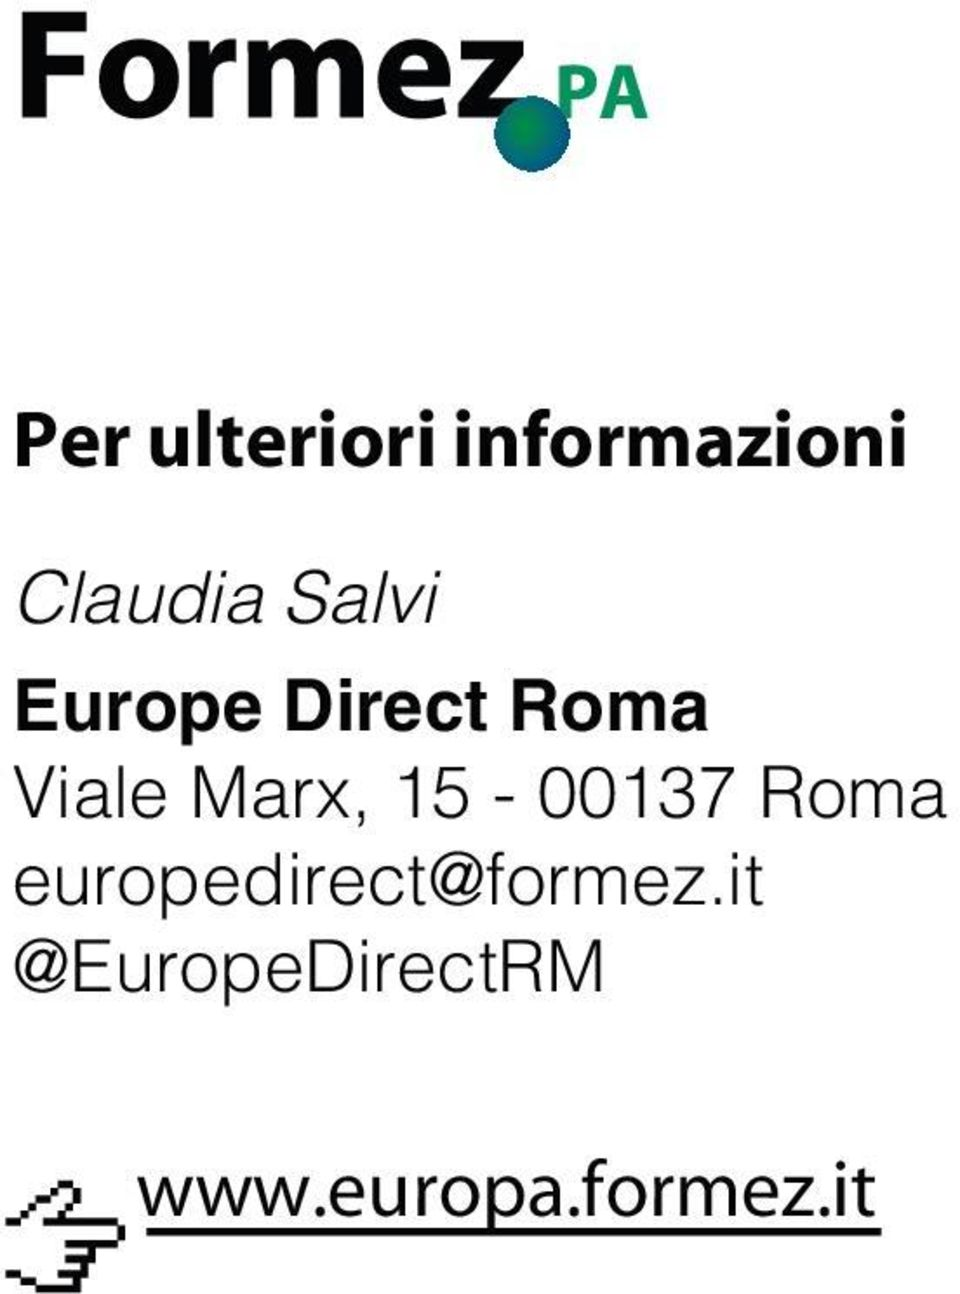 15-00137 Roma europedirect@formez.